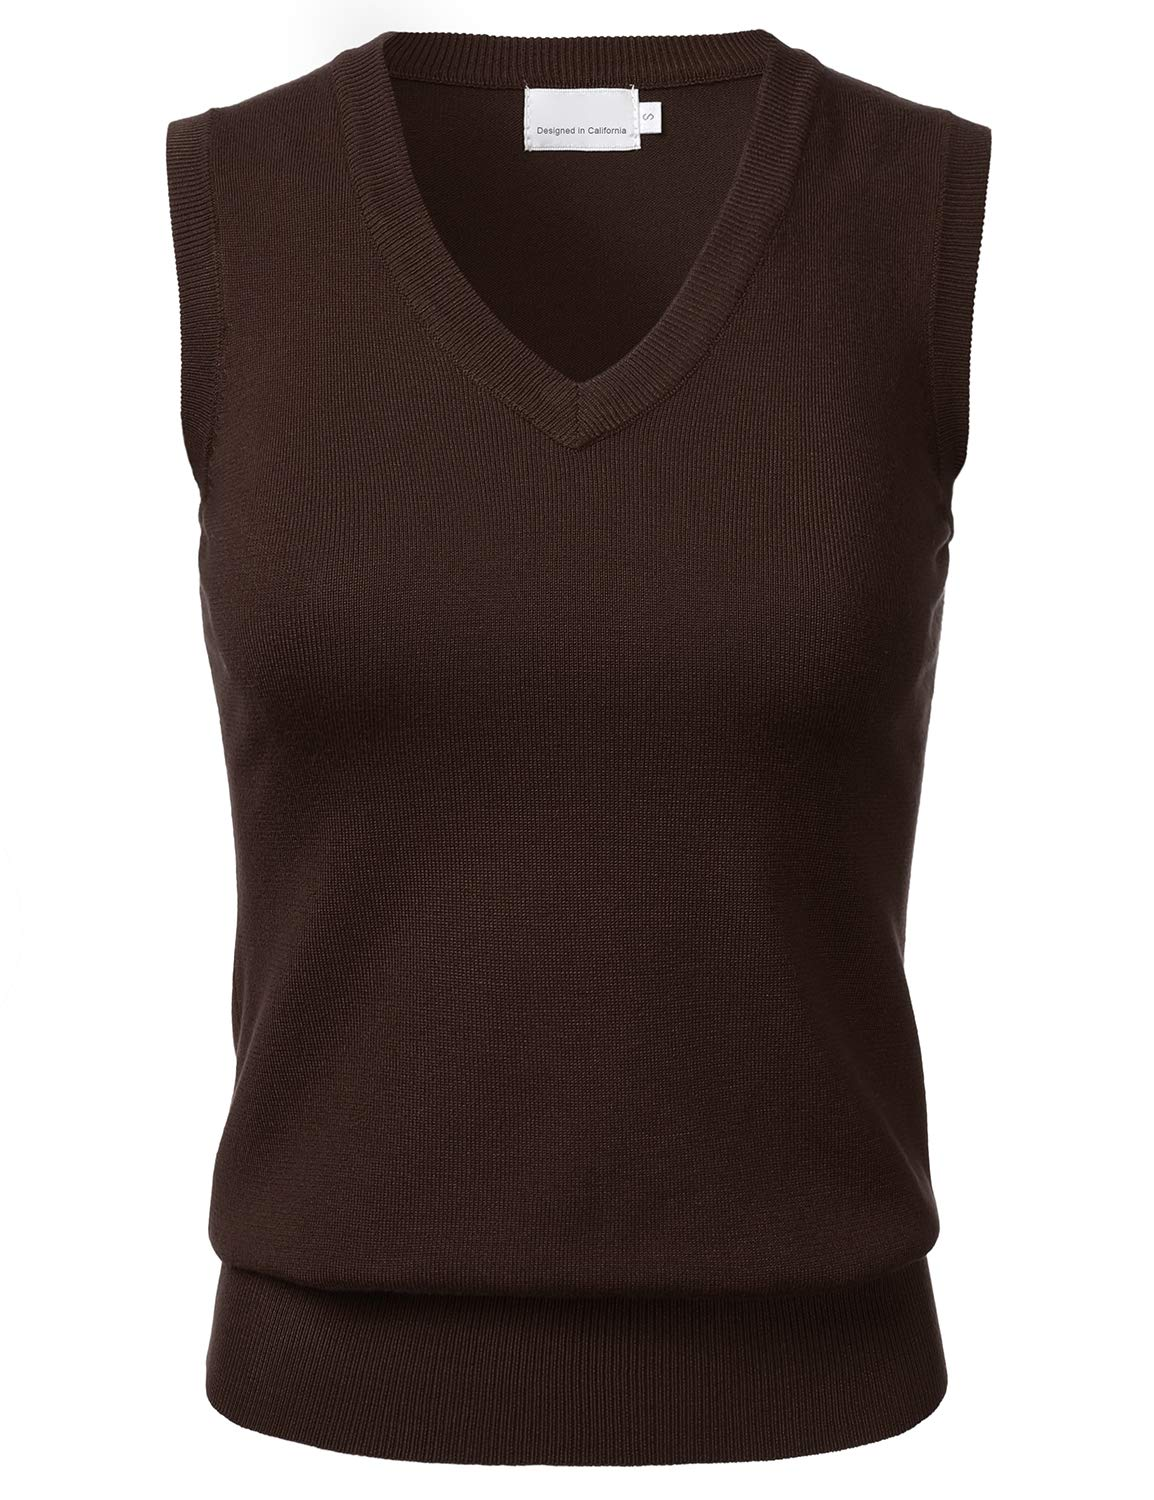 FLORIA Women Solid Classic V-Neck Sleeveless Pullover Sweater Vest Top FSW002